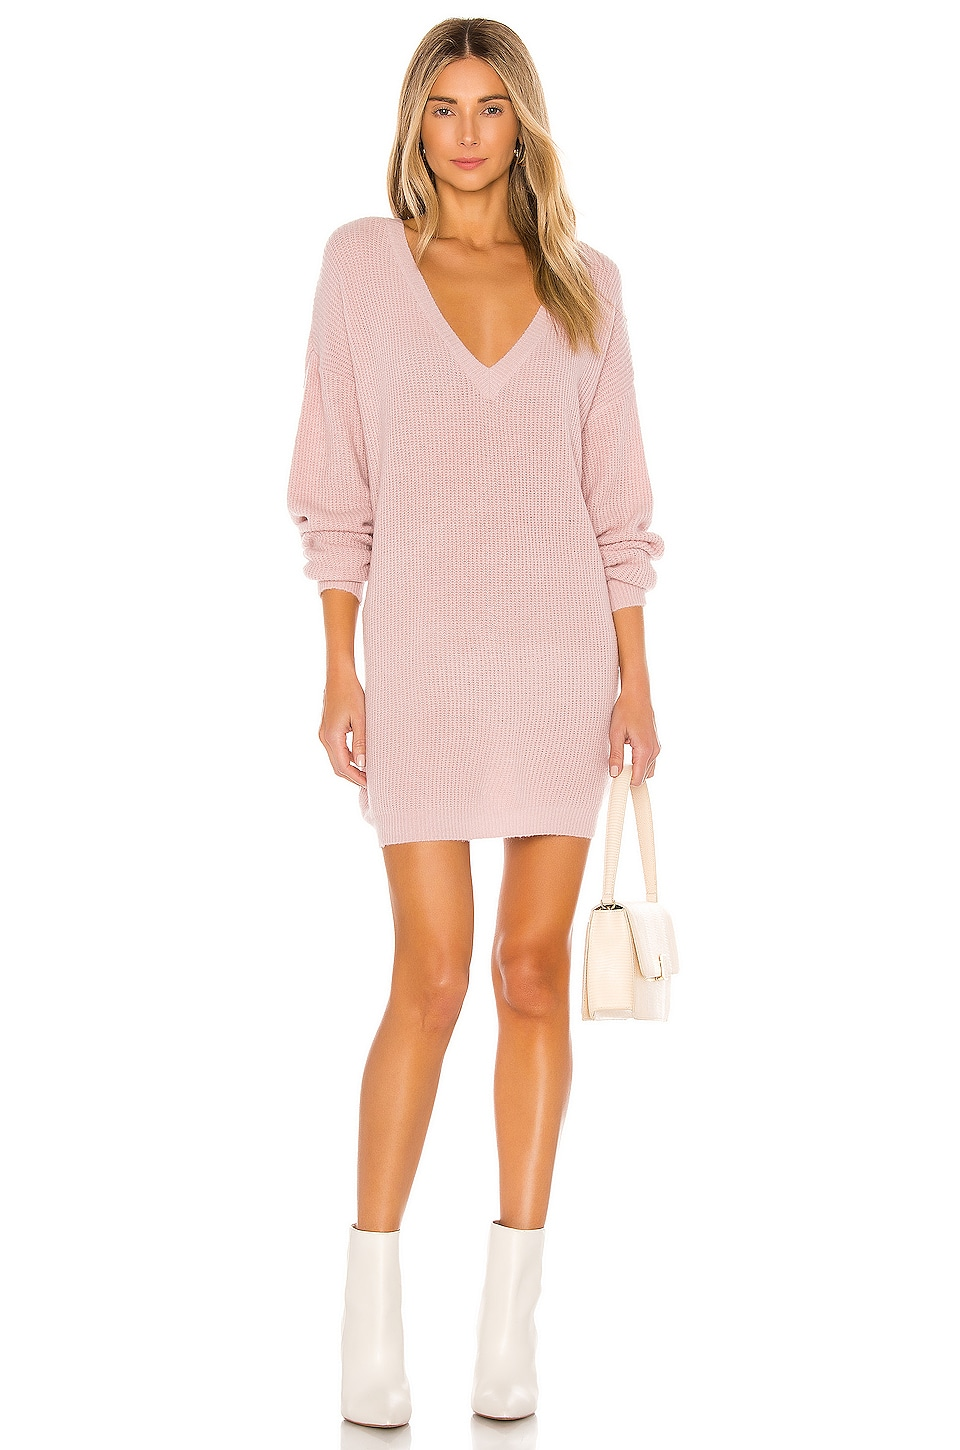 John & Jenn by Line X REVOLVE Berto Sweater Dress in Blush